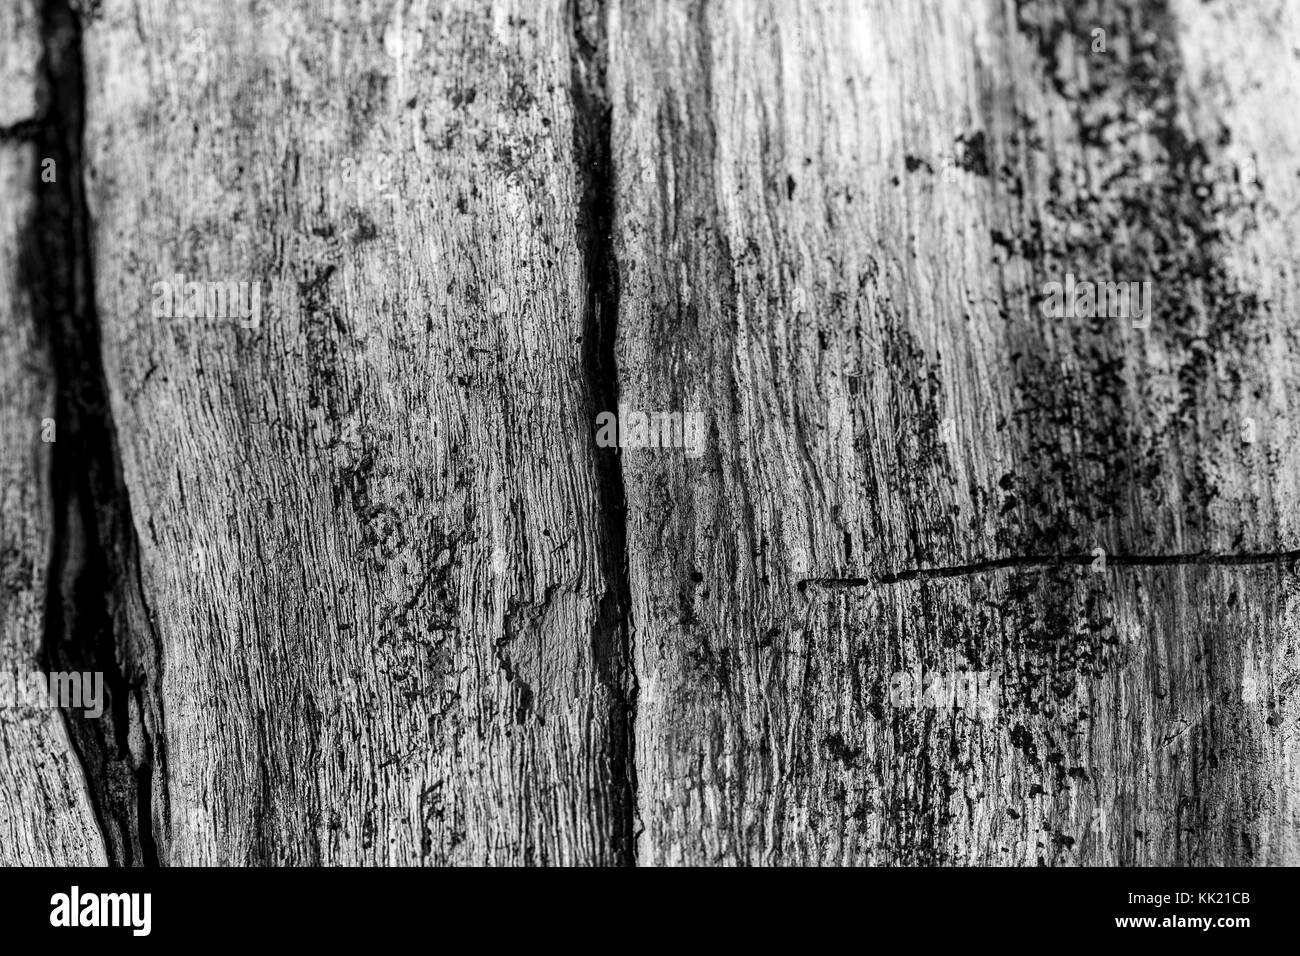 The bark of the old tree. Without color. Background. Close-up - Stock Image